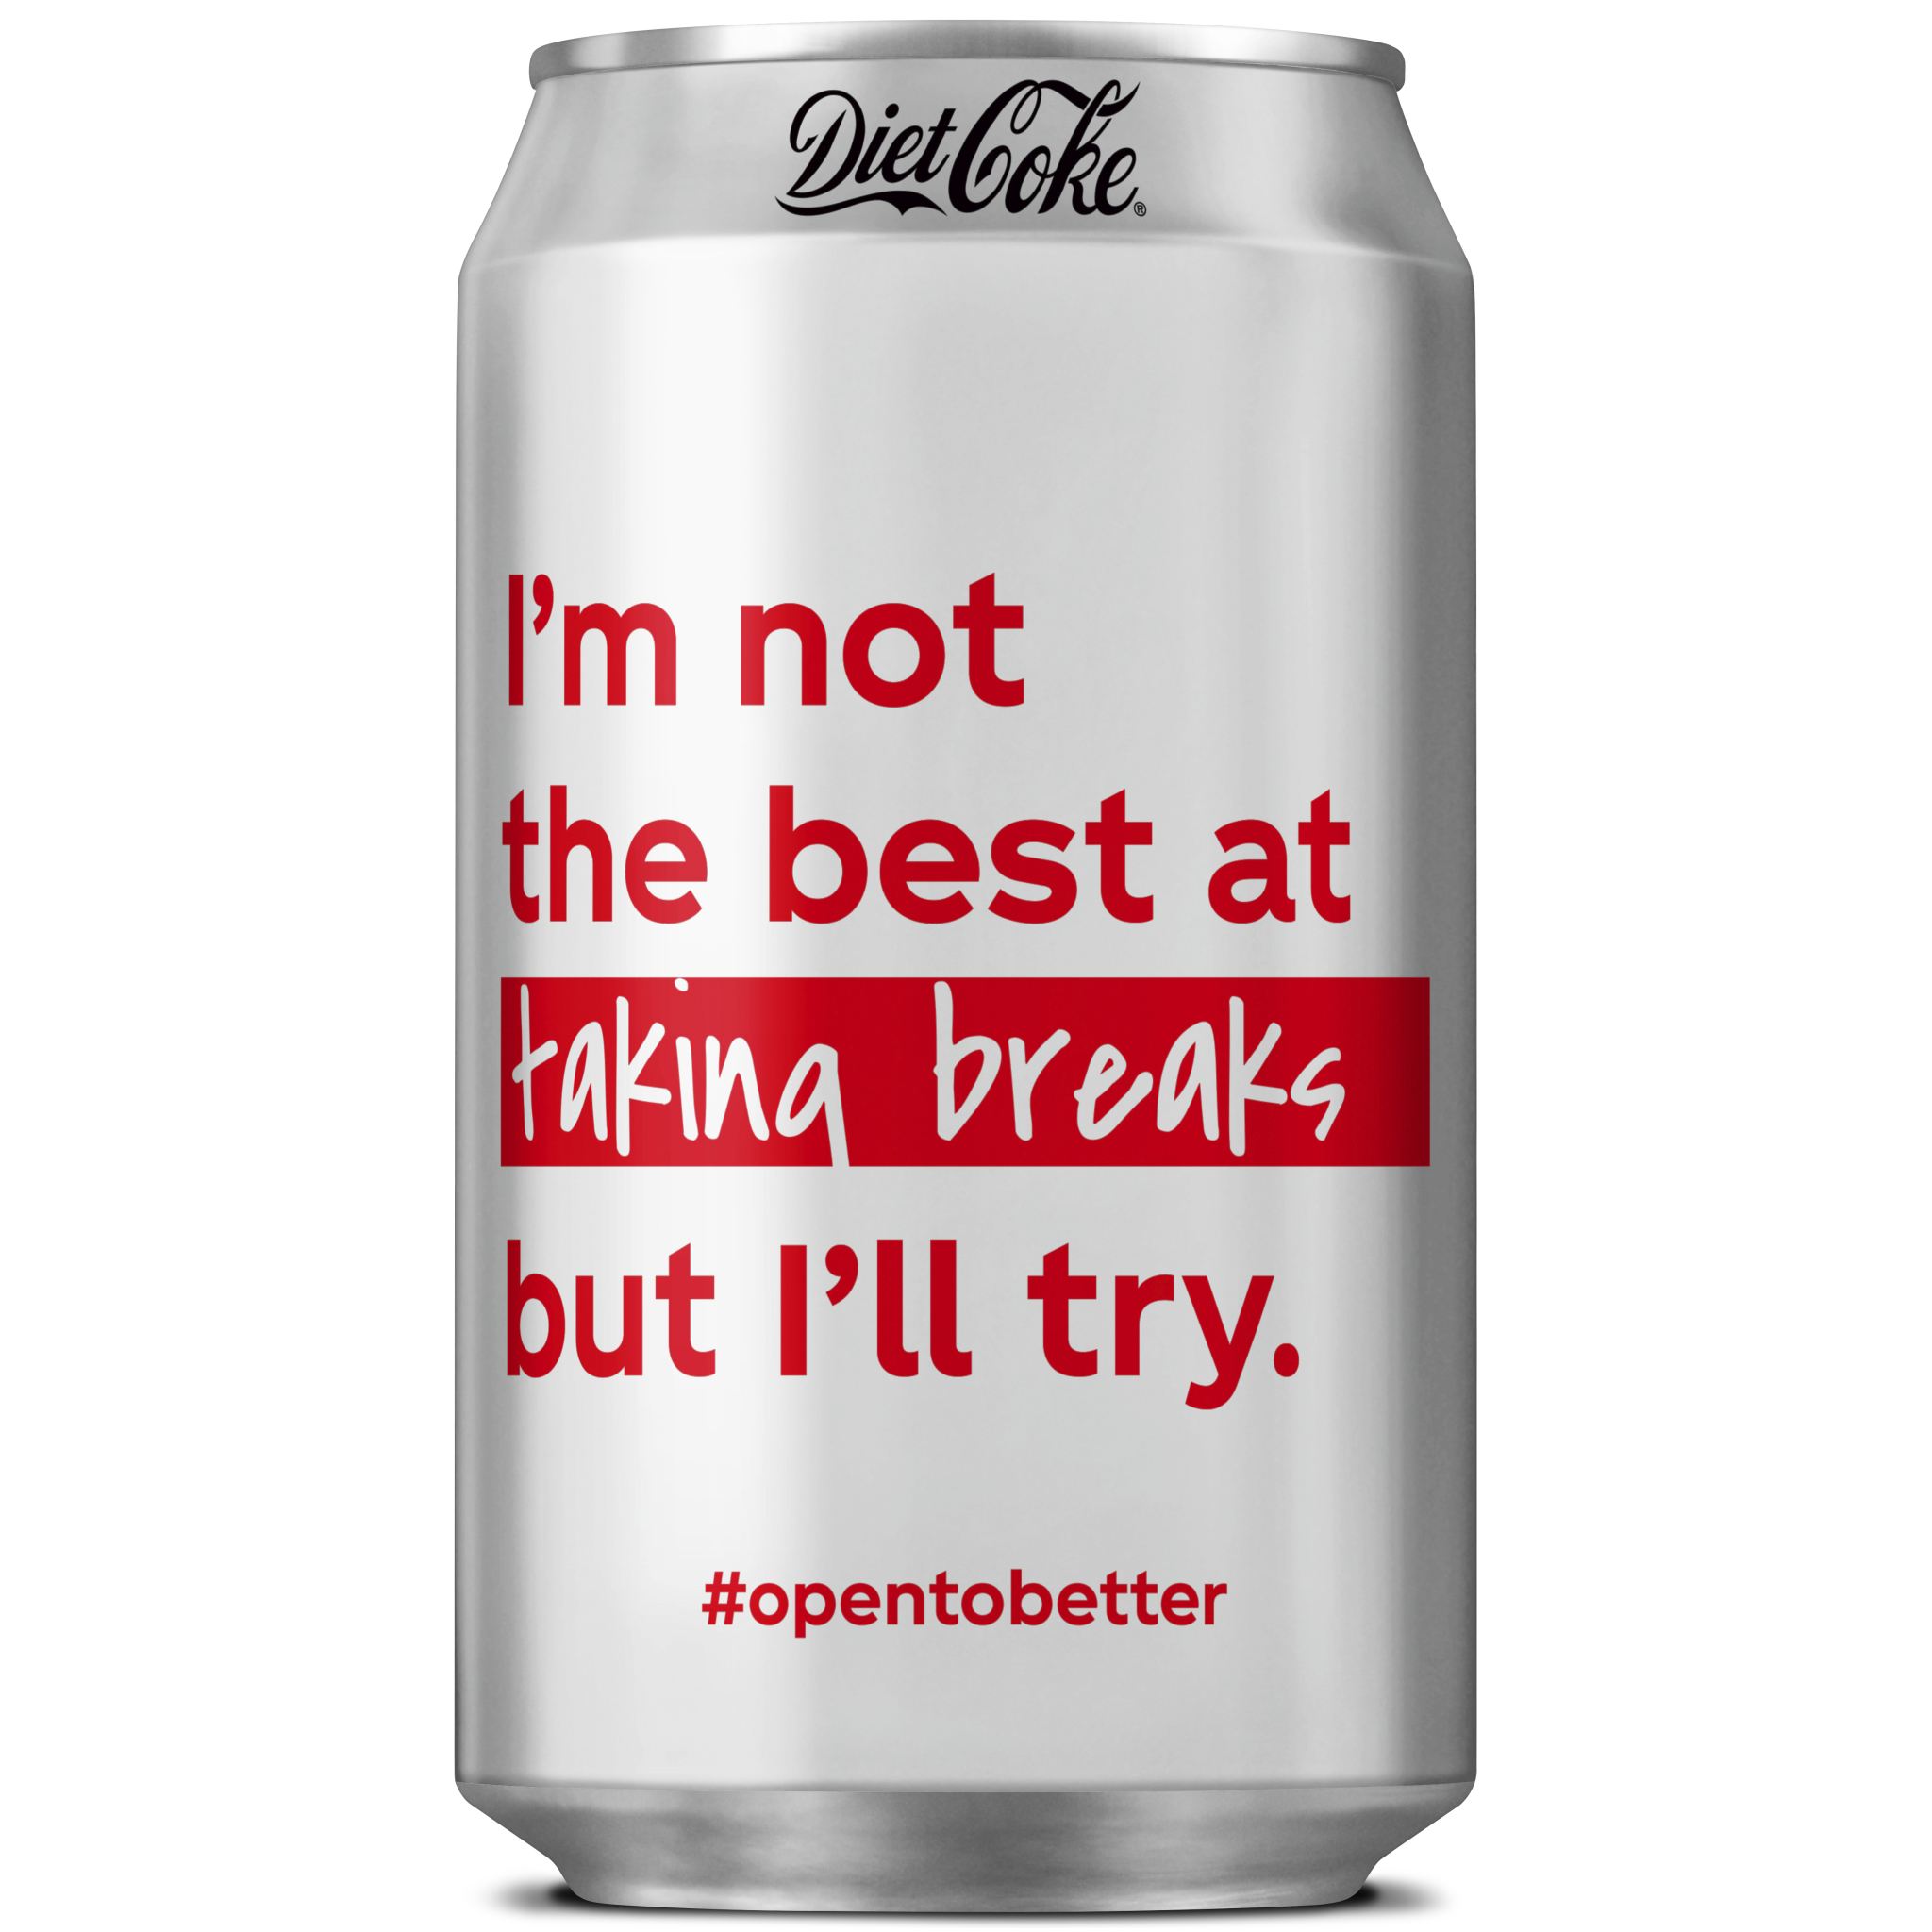 Coke: campaign encourages people to take breaks